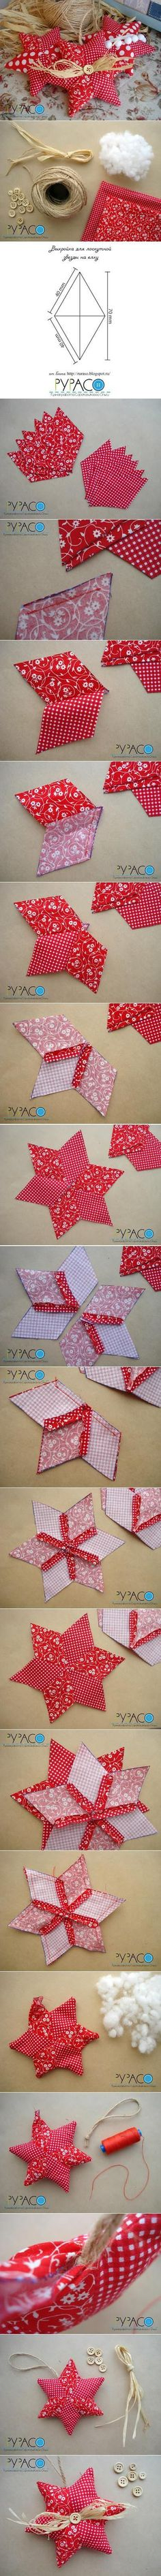 "<input type=""hidden"" value="""" data-frizzlyPostContainer="""" data-frizzlyPostUrl=""http://www.usefuldiy.com/diy-little-fabric-star/"" data-frizzlyPostTitle=""DIY Little Fabric Star"" data-frizzlyHoverContainer=""""><p>>>> Craft Tutorials More Free Instructions Free Tutorials More Craft Tutorials</p>"